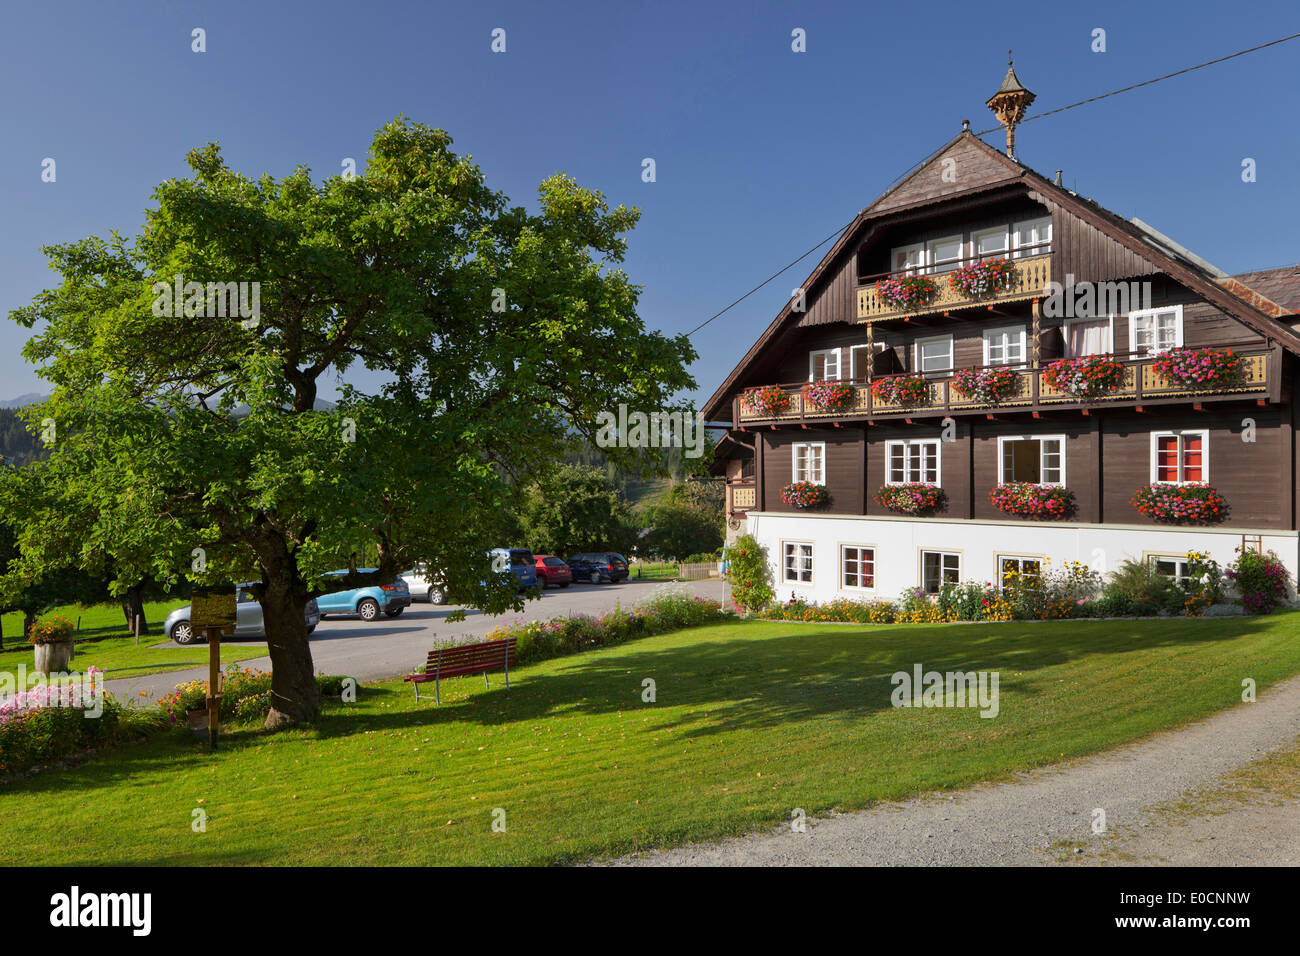 Farmhouse in Ramsau am Dachstein, Steiermark, Austria Stock Photo